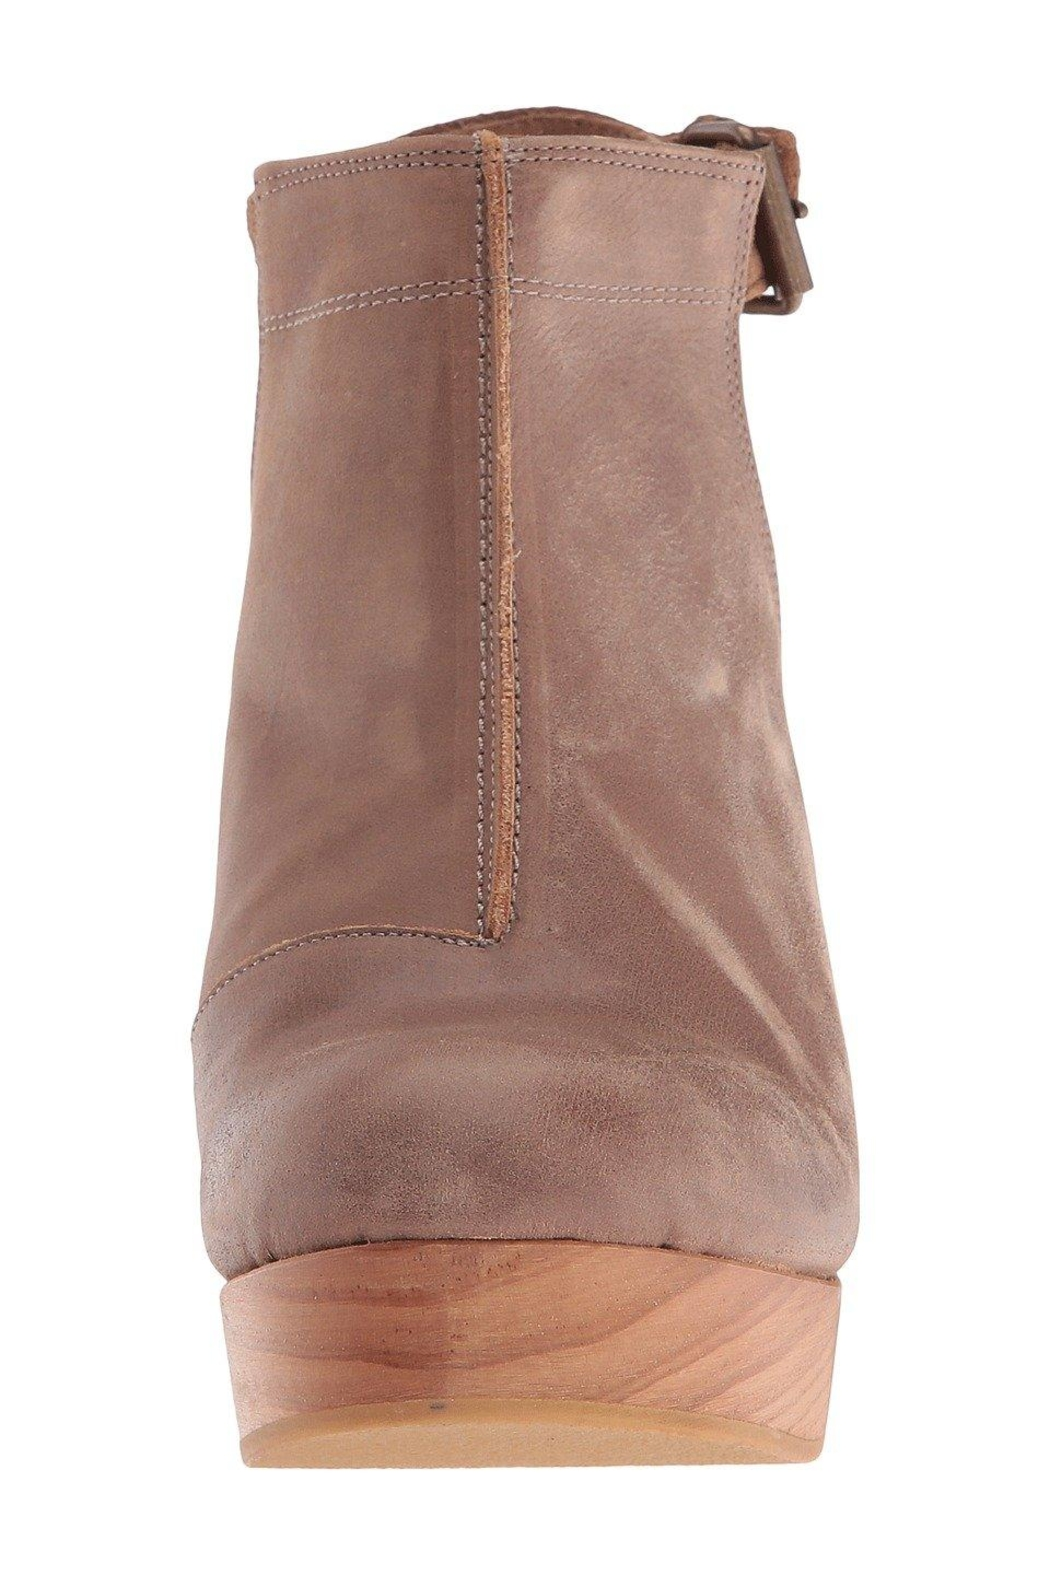 Free People Amber Orchard Clog - Front Full Image